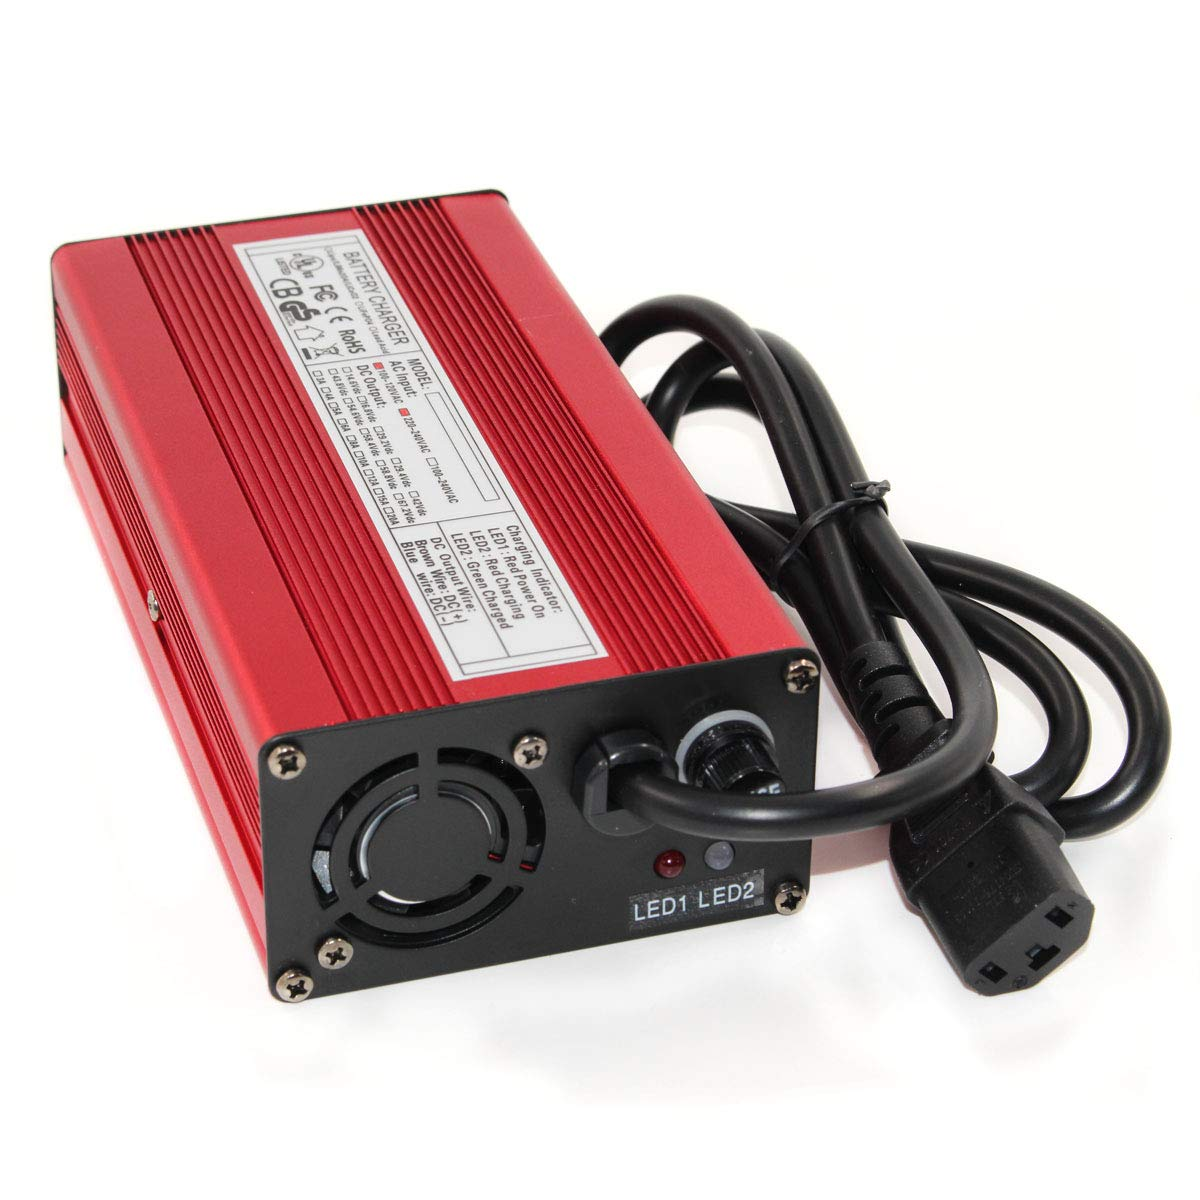 Accessories & Parts Lovely 12v 5a Lead Acid Battery Smart Charger 12v 5a Charger Fully Automatic With Fan Battery Pack Charger Input 100vac-240vac